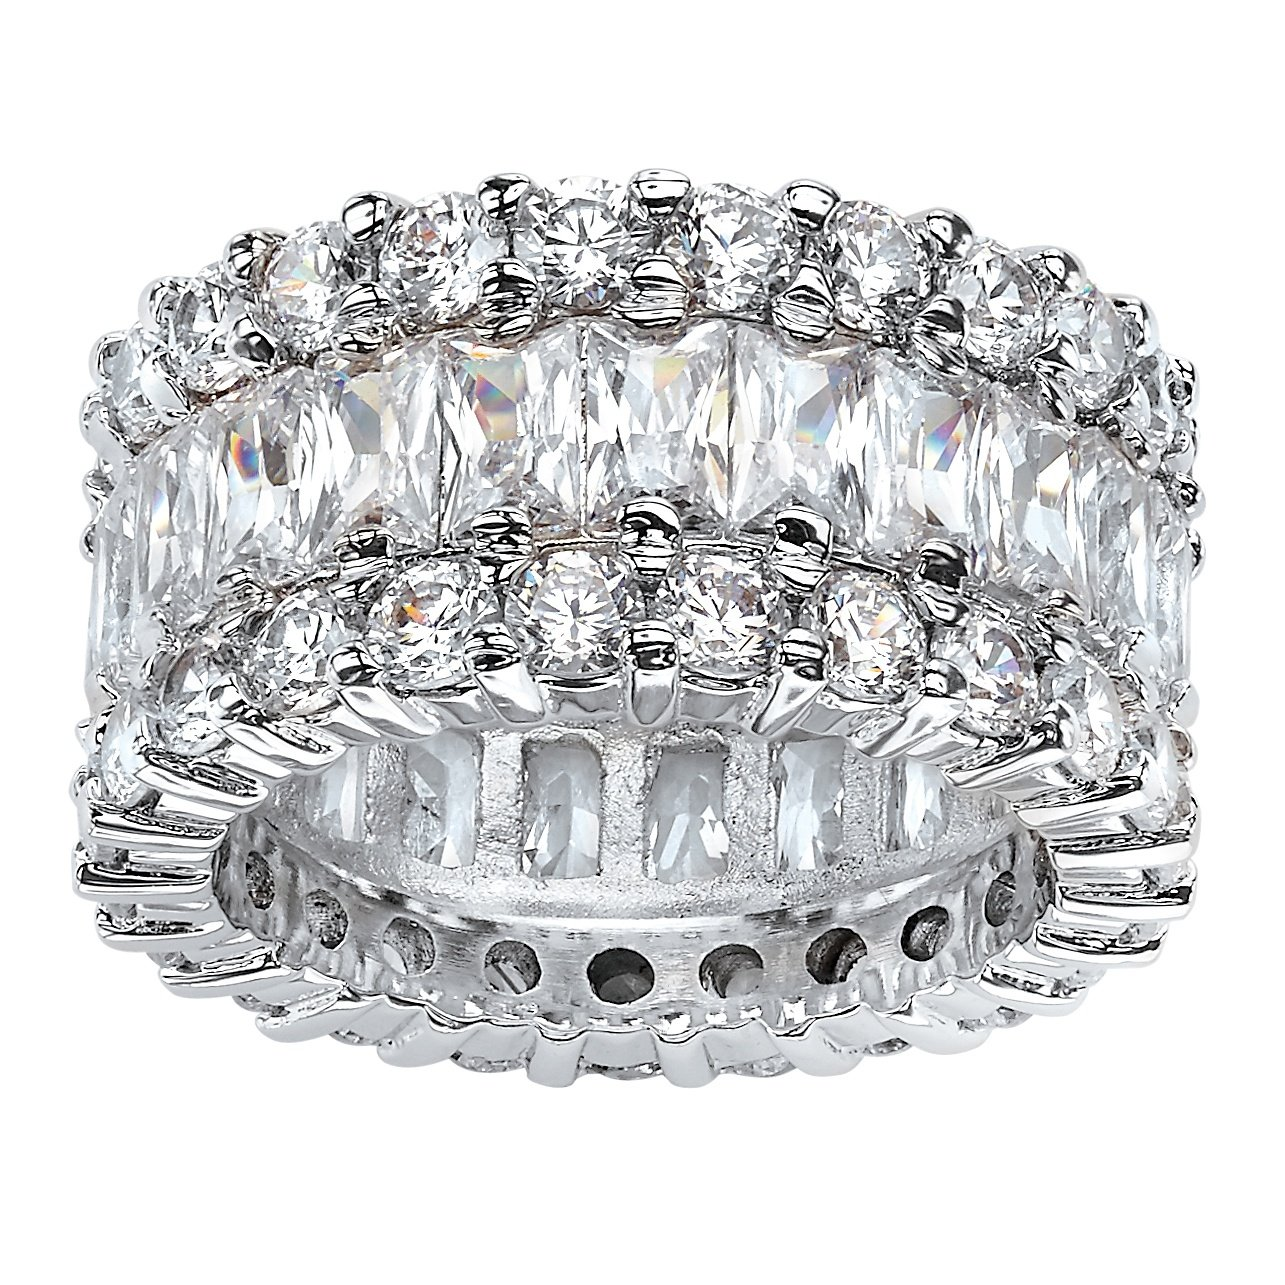 Baguette-Cut White Cubic Zirconia Platinum over .925 Silver Eternity Ring Size 6